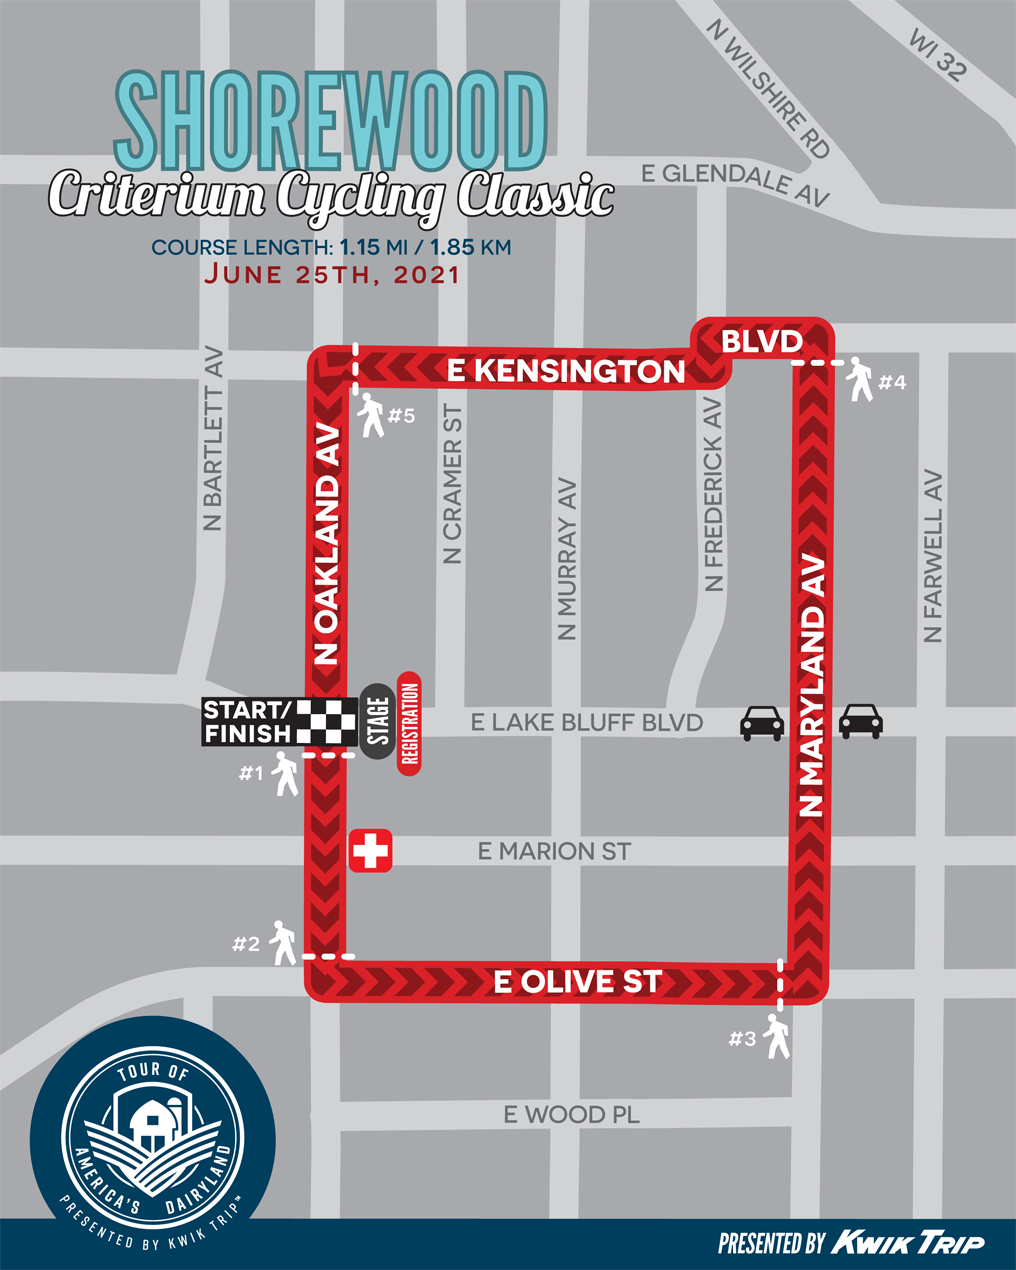 Shorewood Criterium Cycling Classic Race Map